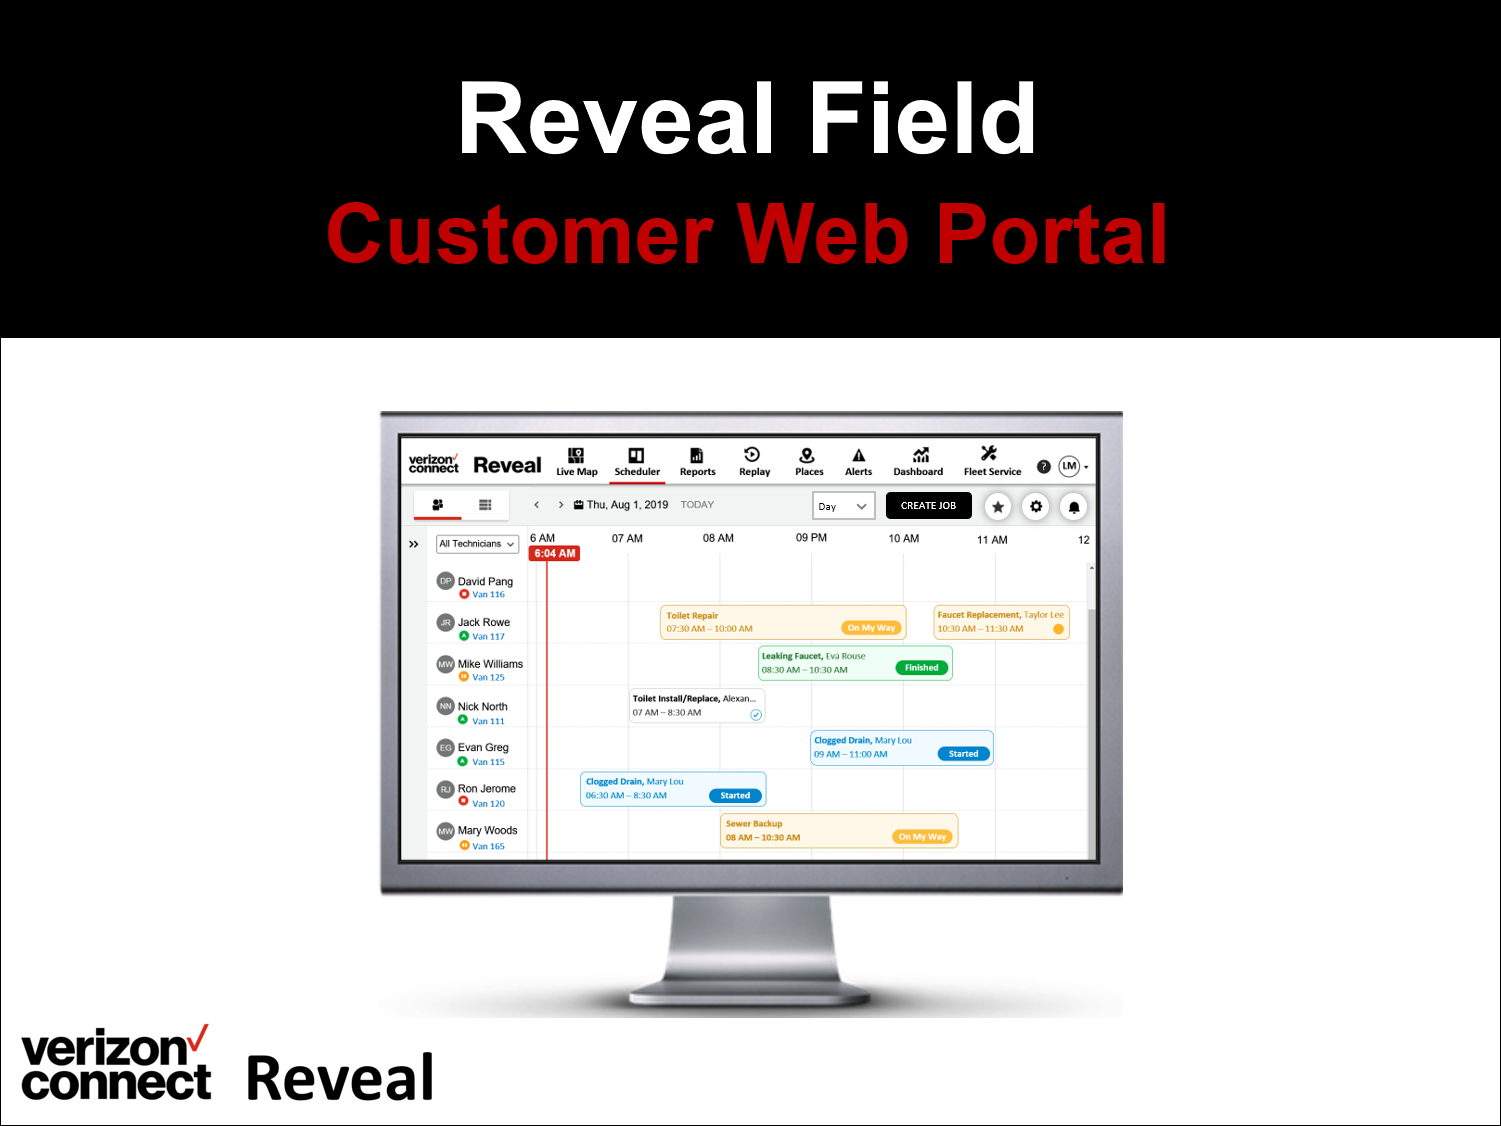 Verizon Connect Reveal Field eTutorial (for admin/dispatchers)